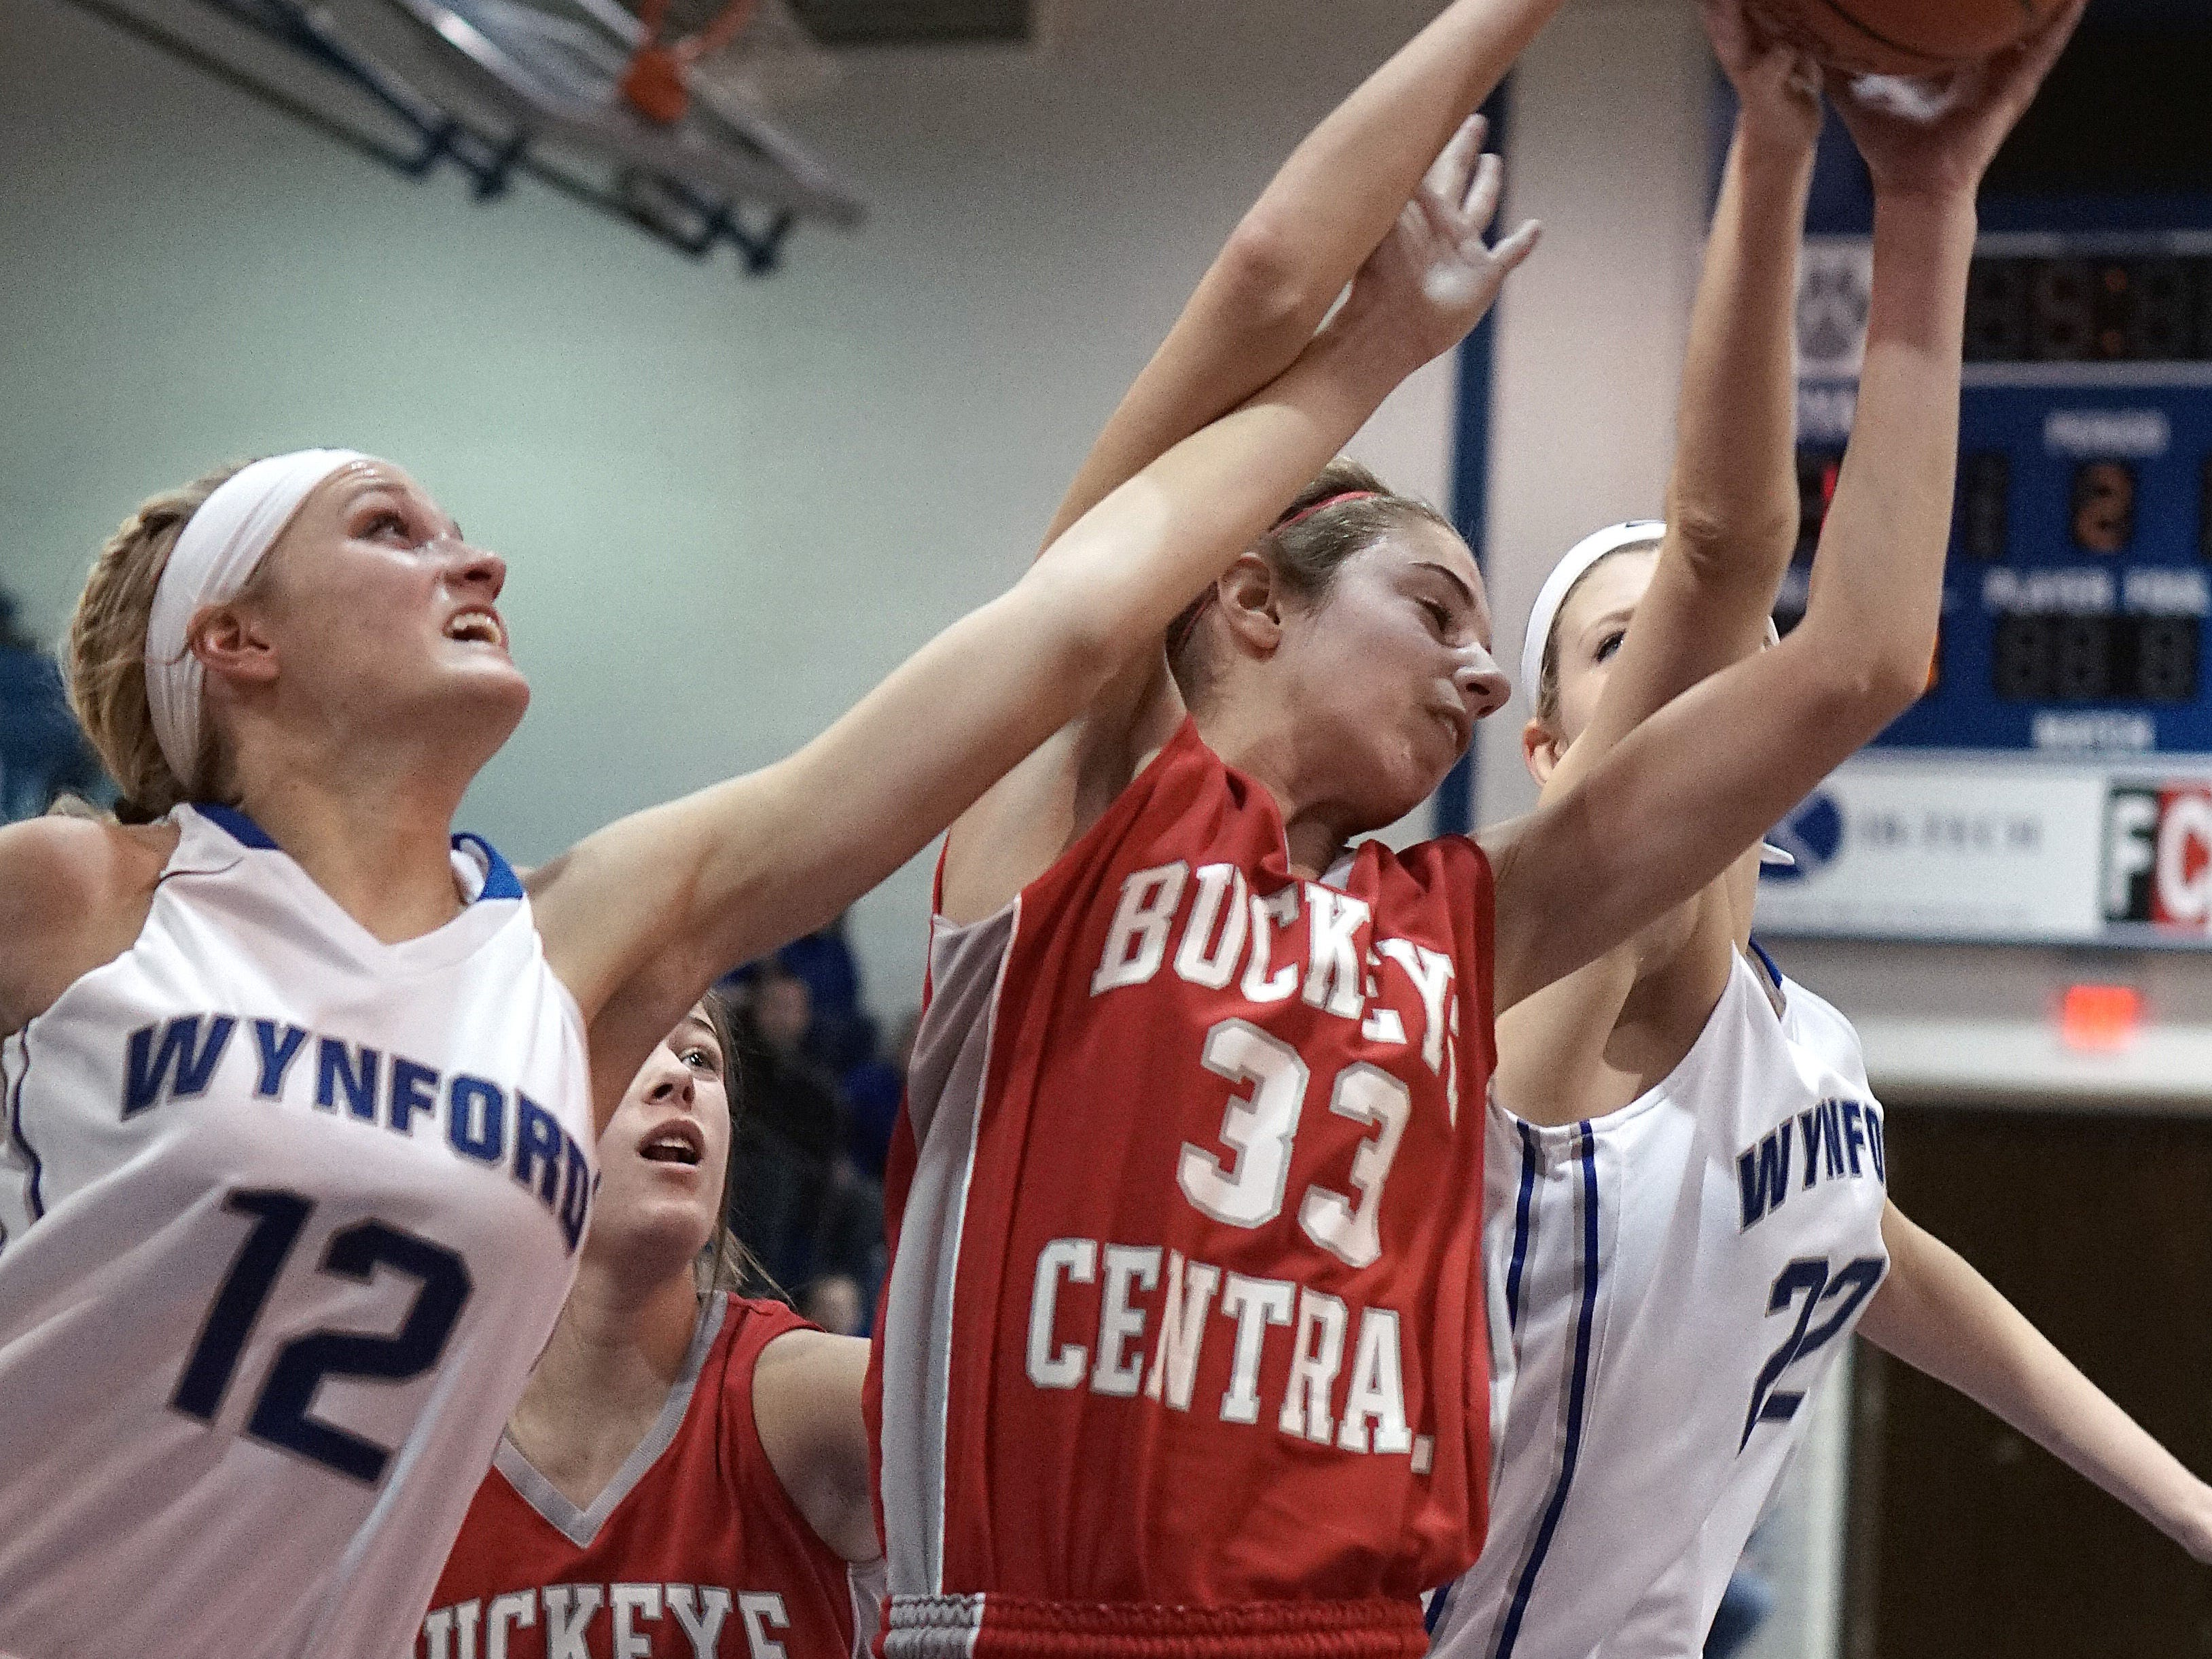 Buckeye Central's Isabelle Biglin fights for a rebound during their game Saturday afternoon against Wynford at Wynford.